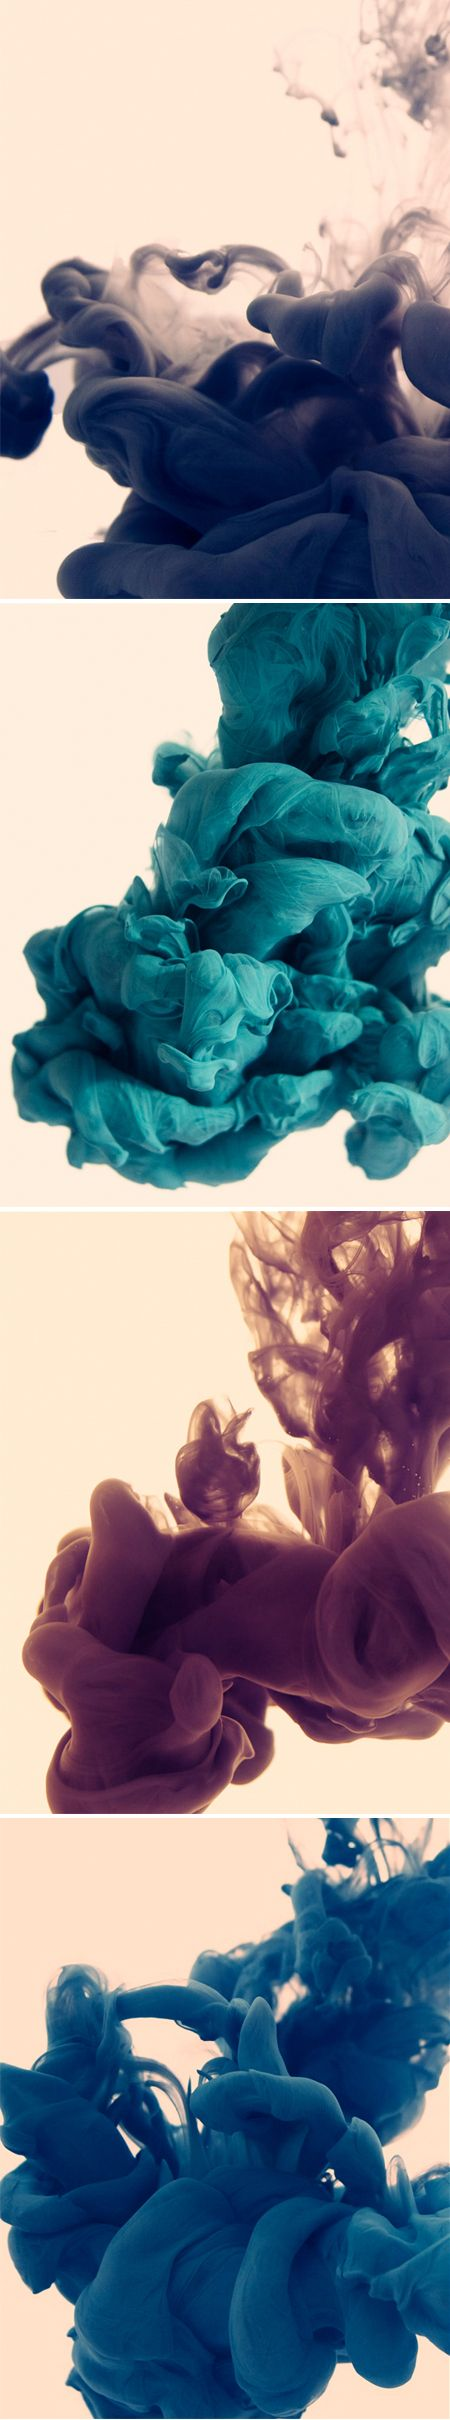 Alberto Seveso / Photographs of ink in water